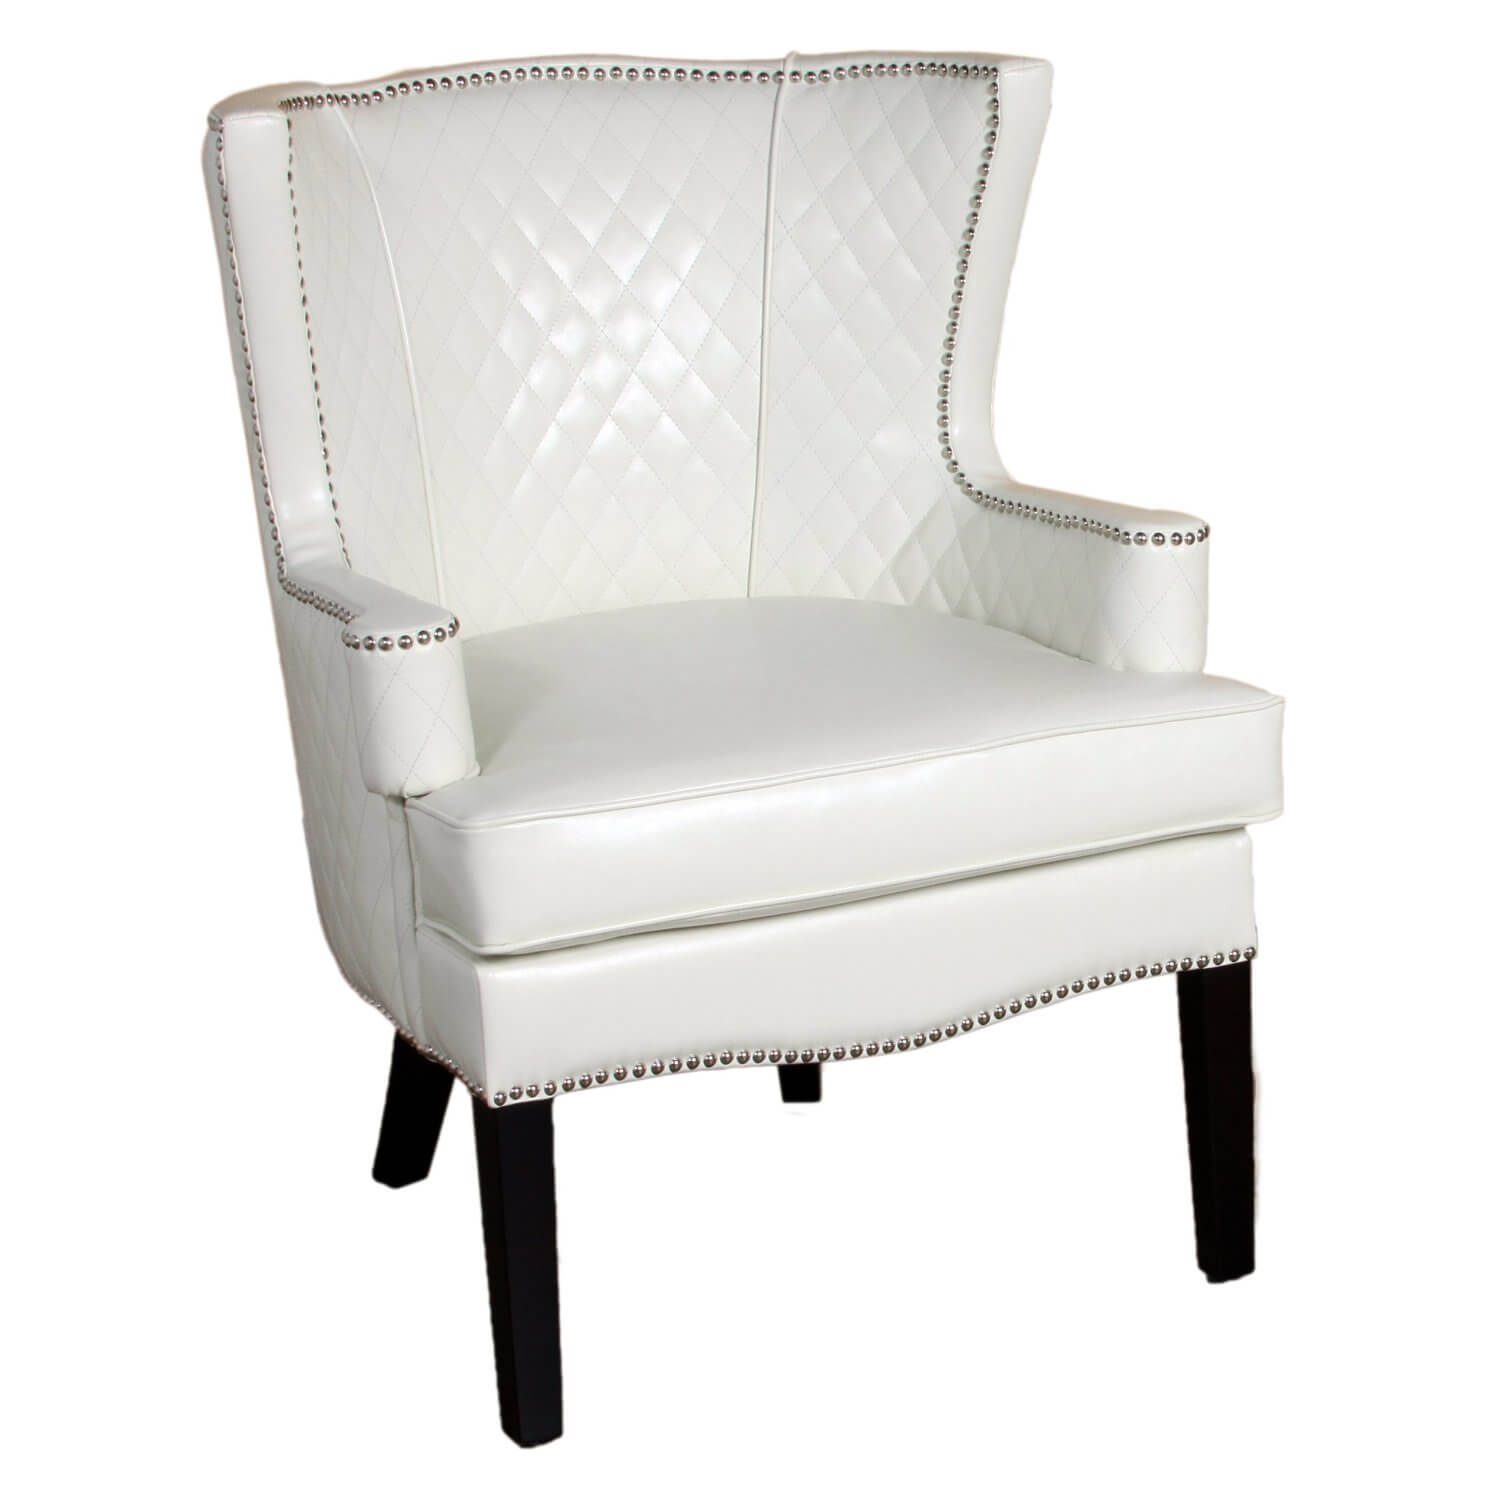 white modern accent chairs for the living room whiteaccentchair dining table with another ivory toned chair this quilted leather seat best features wide seating piece wicker patio